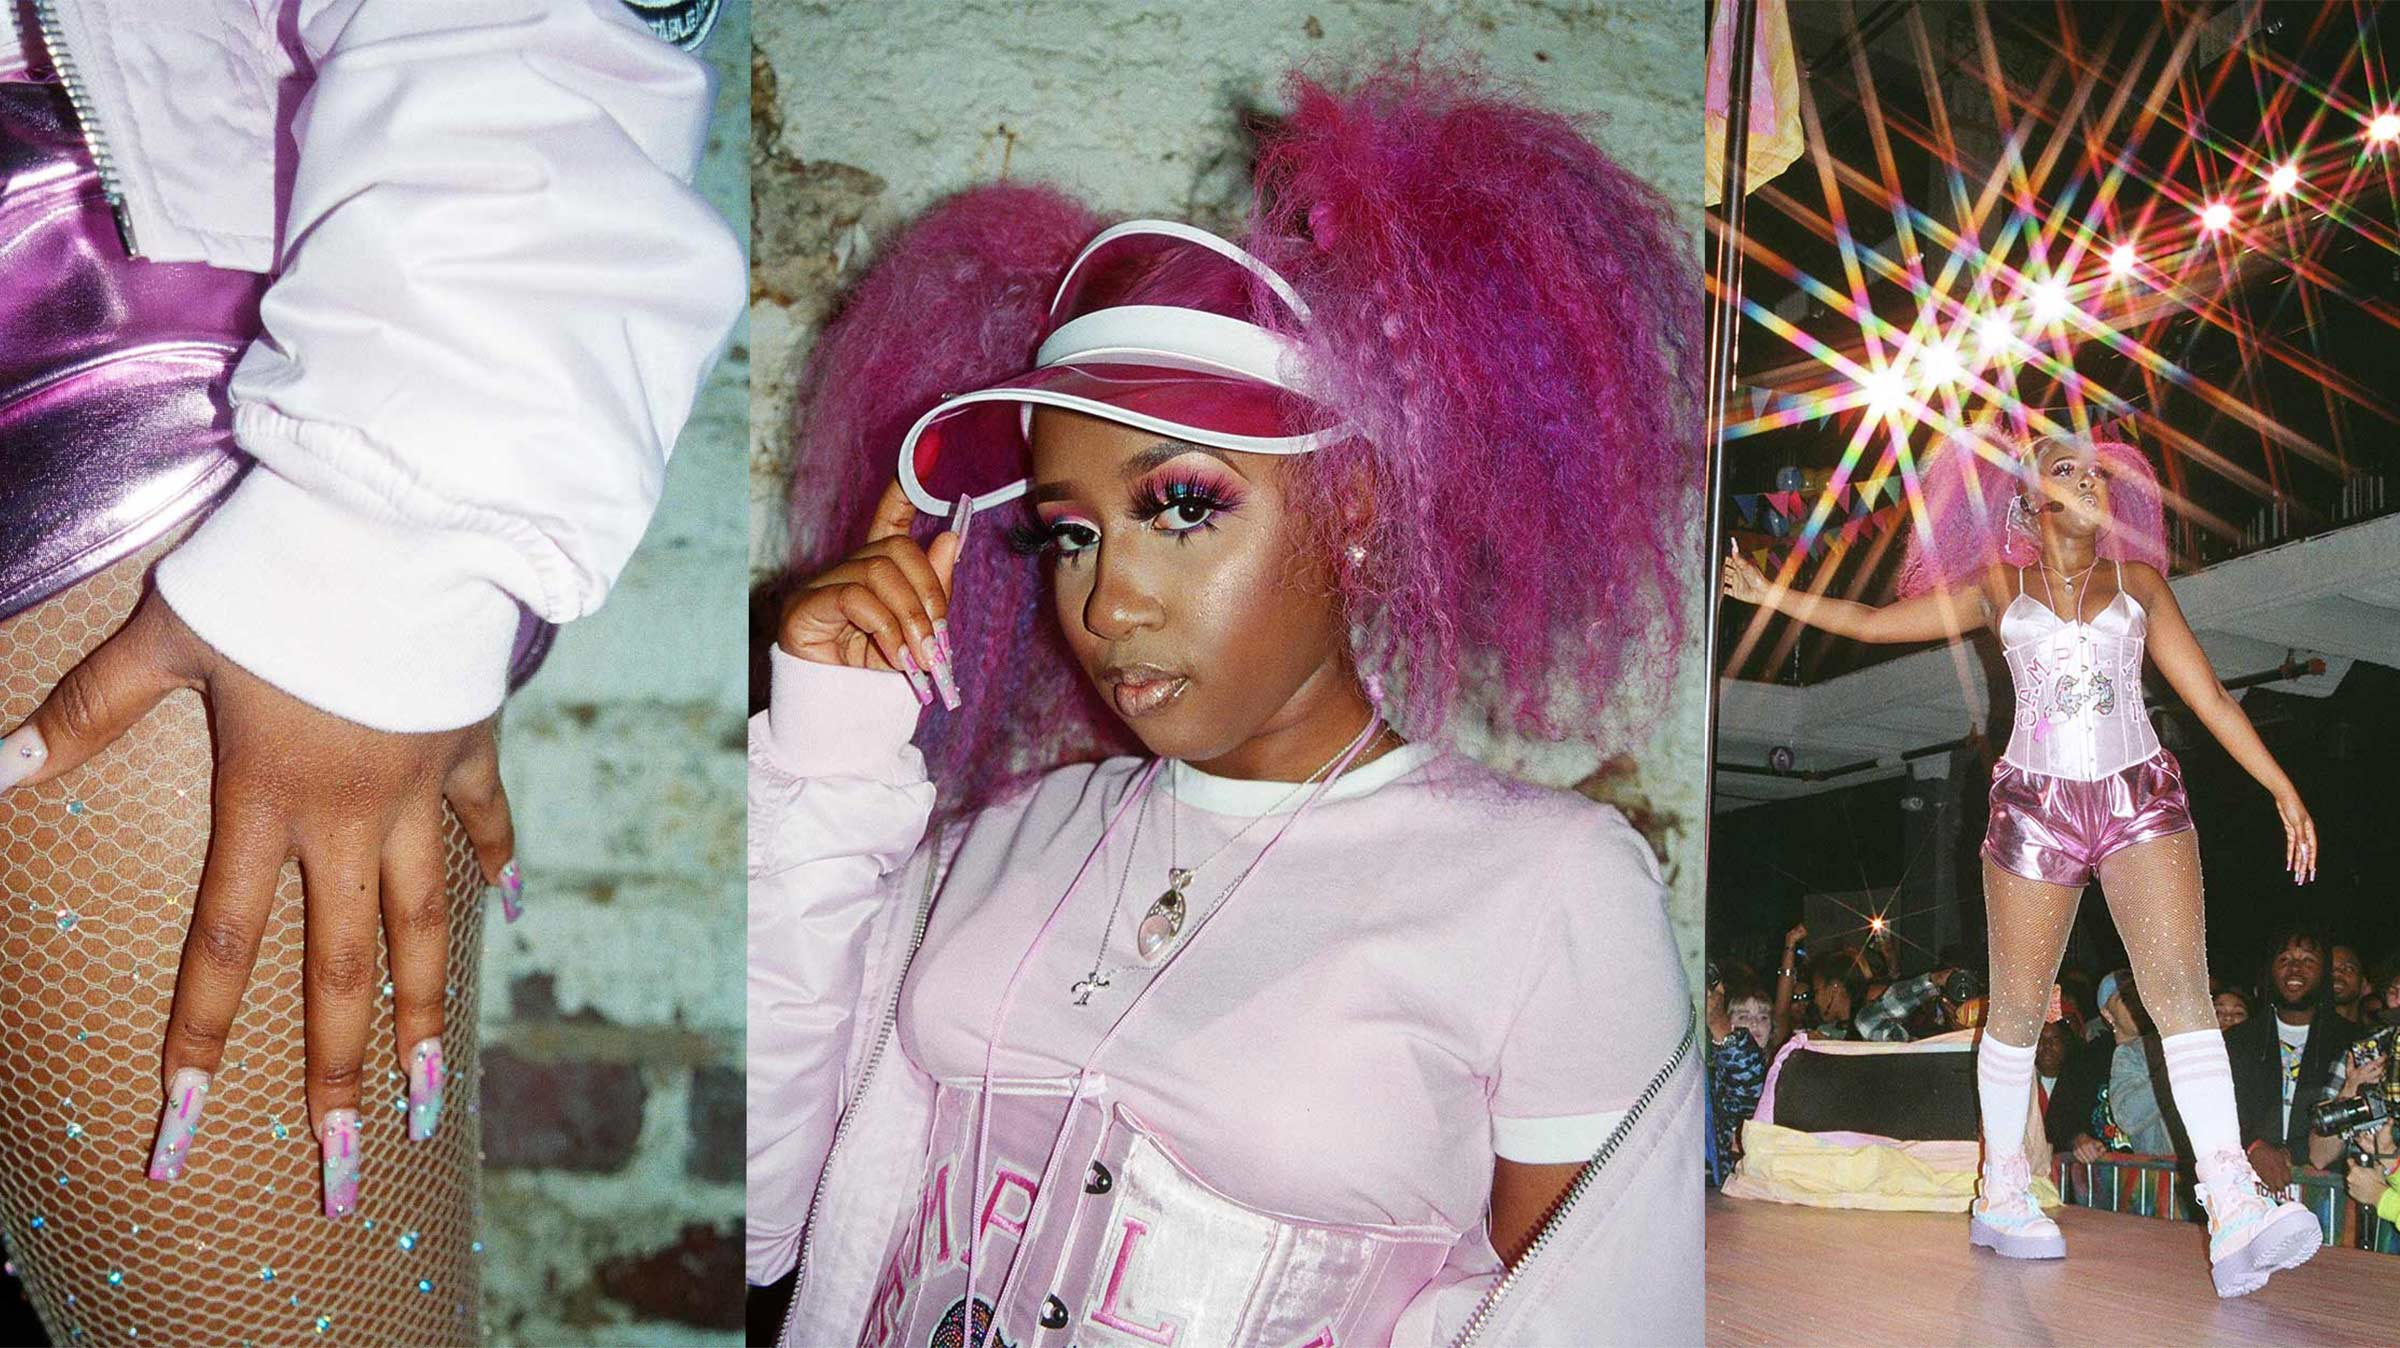 Yung Baby Tate gathered hip hop's young female vanguard for this year's most inclusive, glamorous, and rowdy show